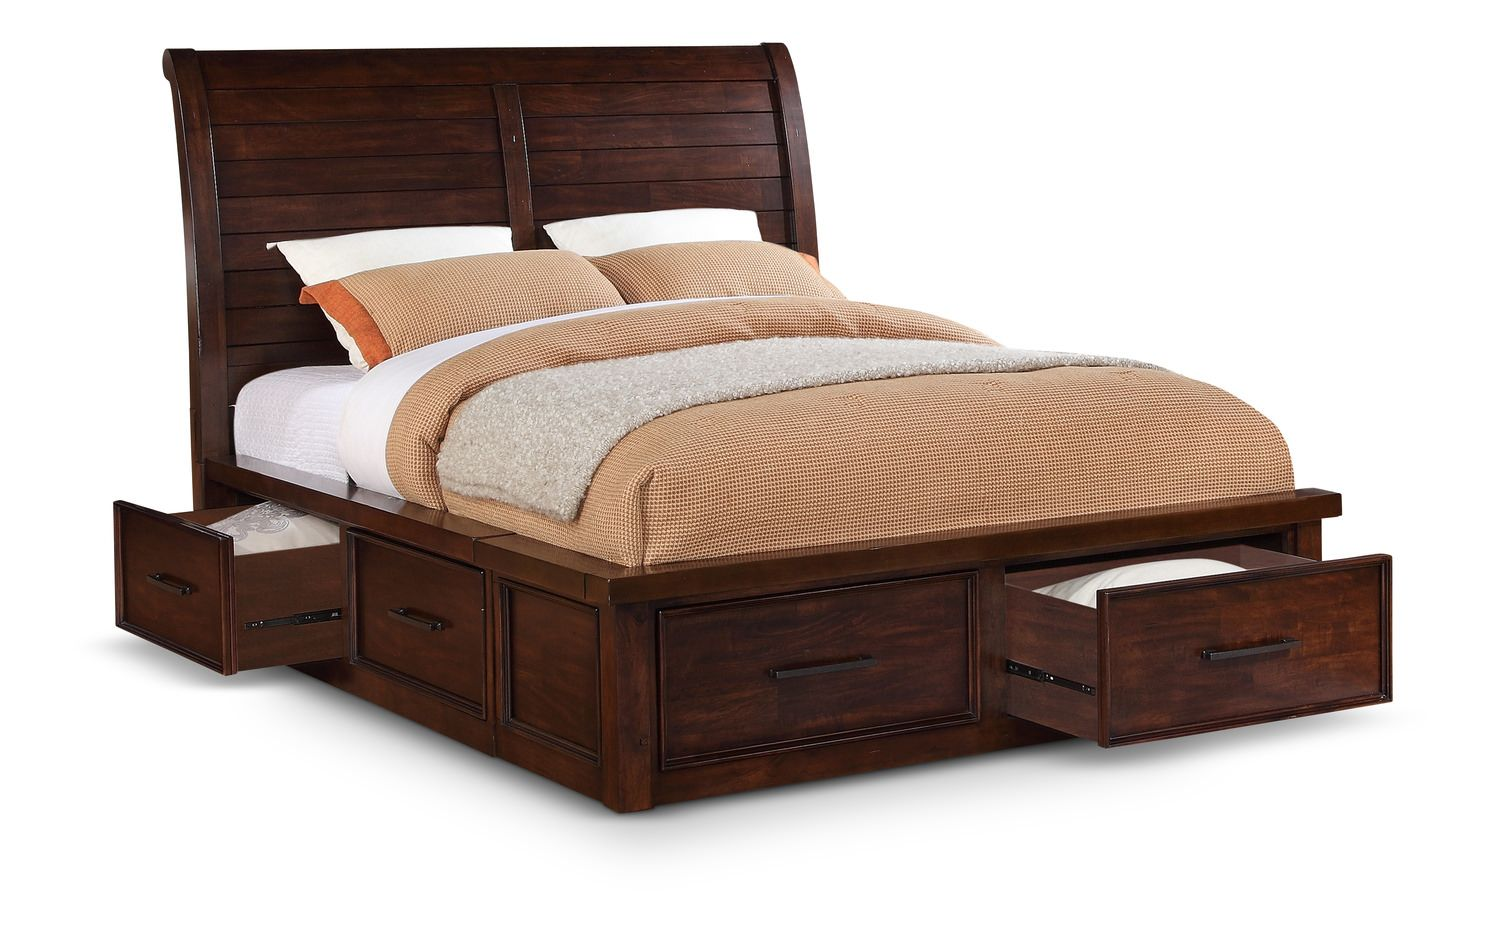 Delray king sleigh bed with storage and awesome bedding